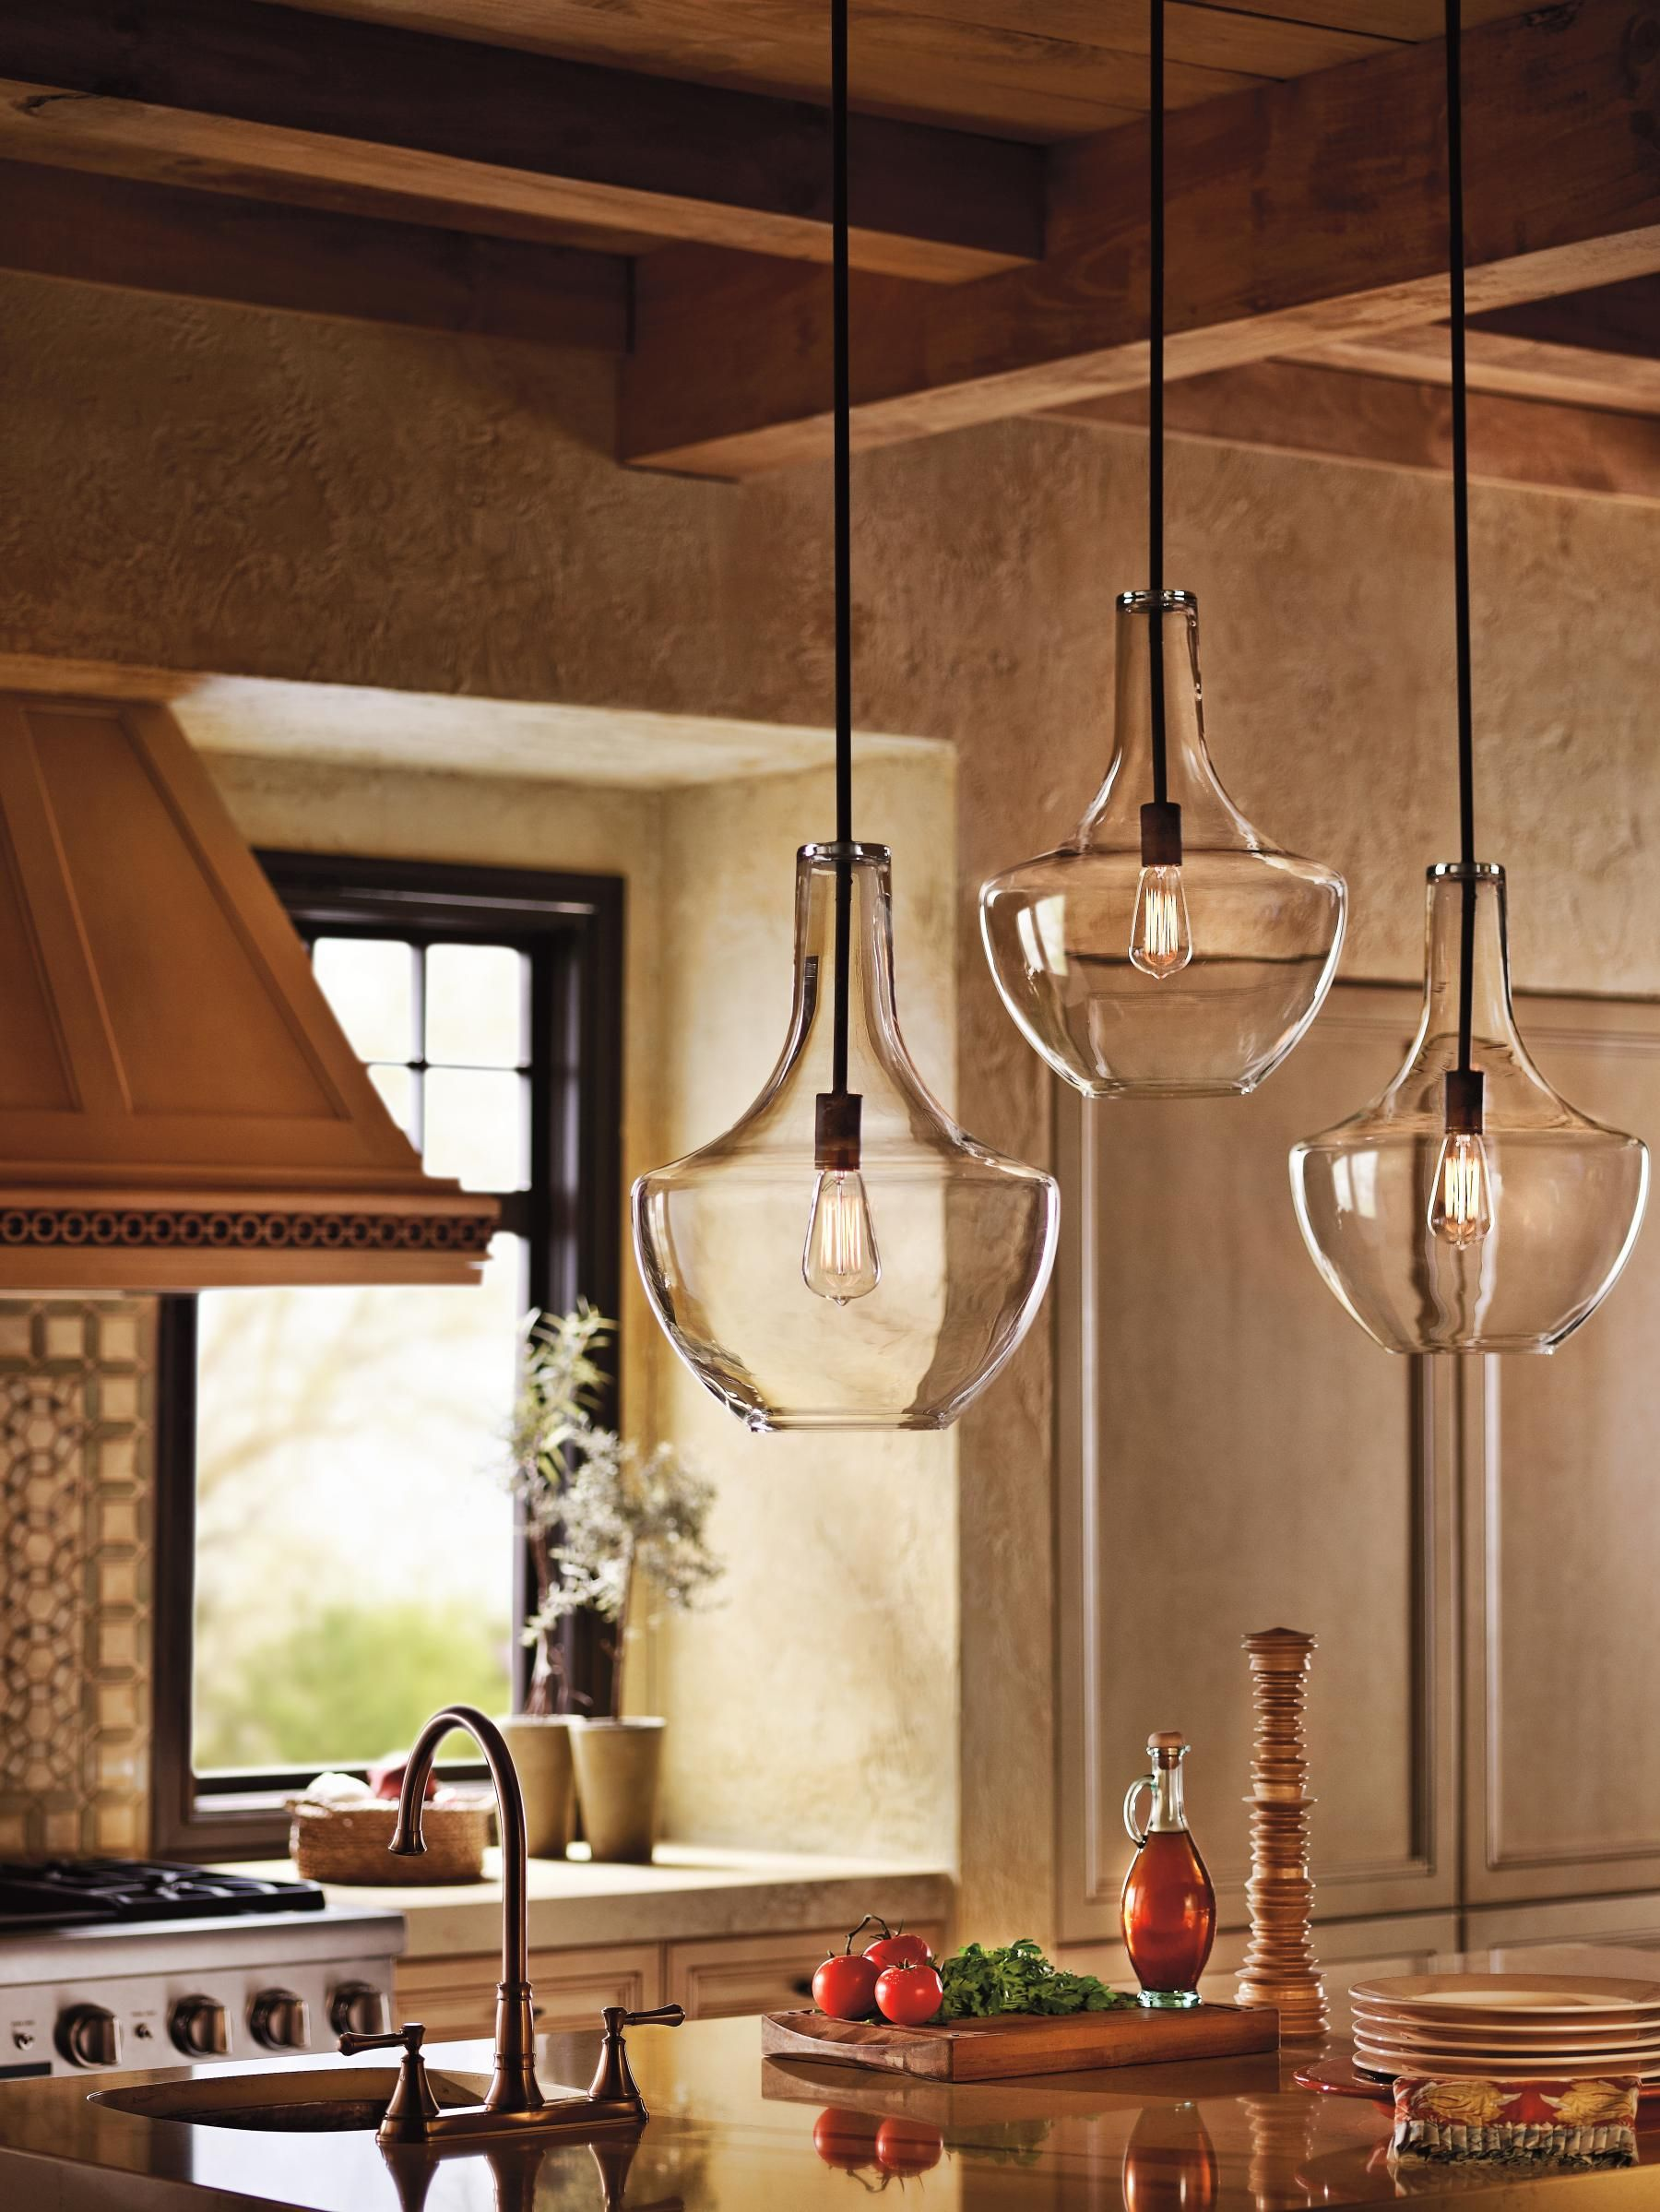 kitchen hanging lights This transitional style pendant is a perfect option to light up and decorate your kitchen